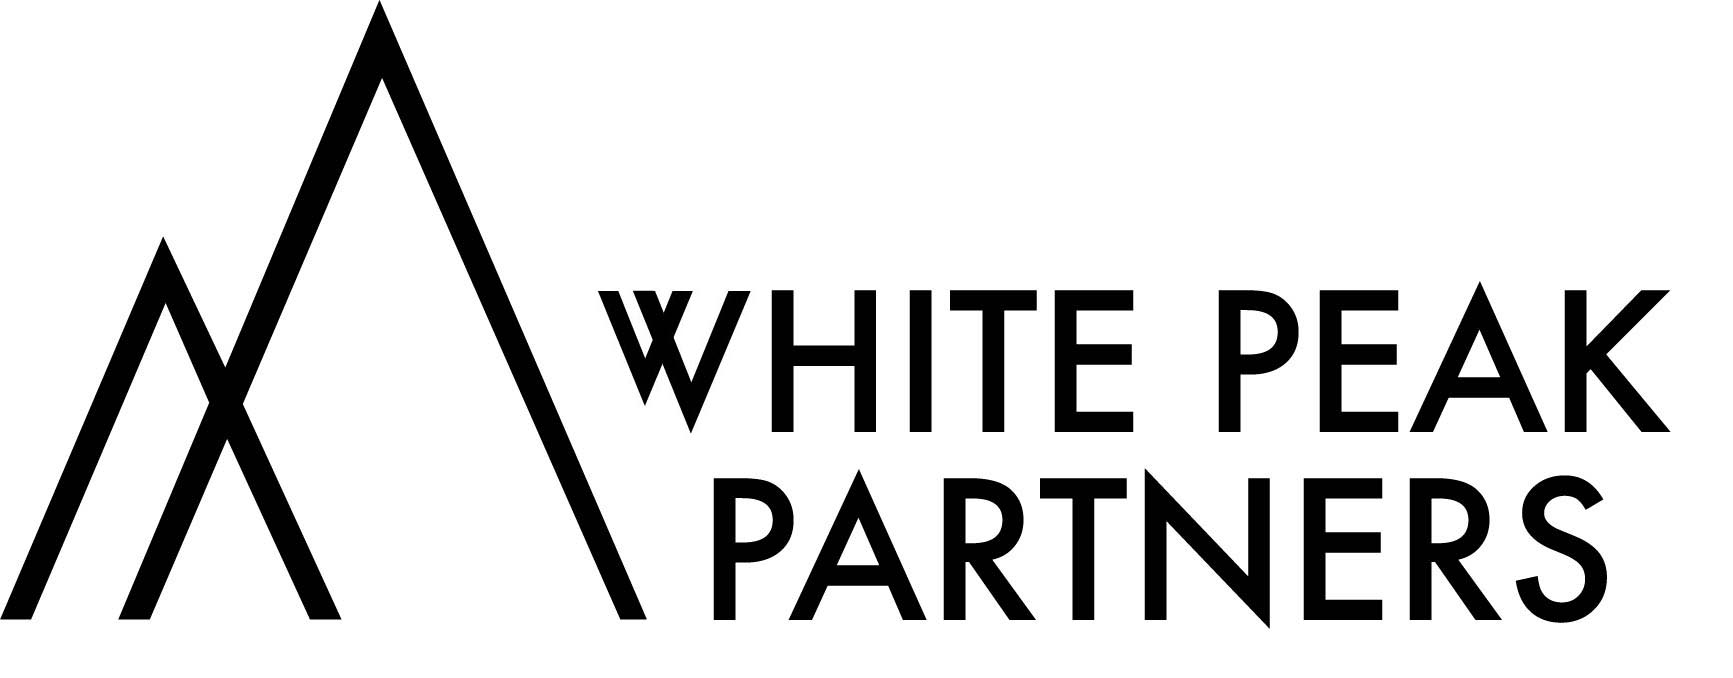 White Peak Partners